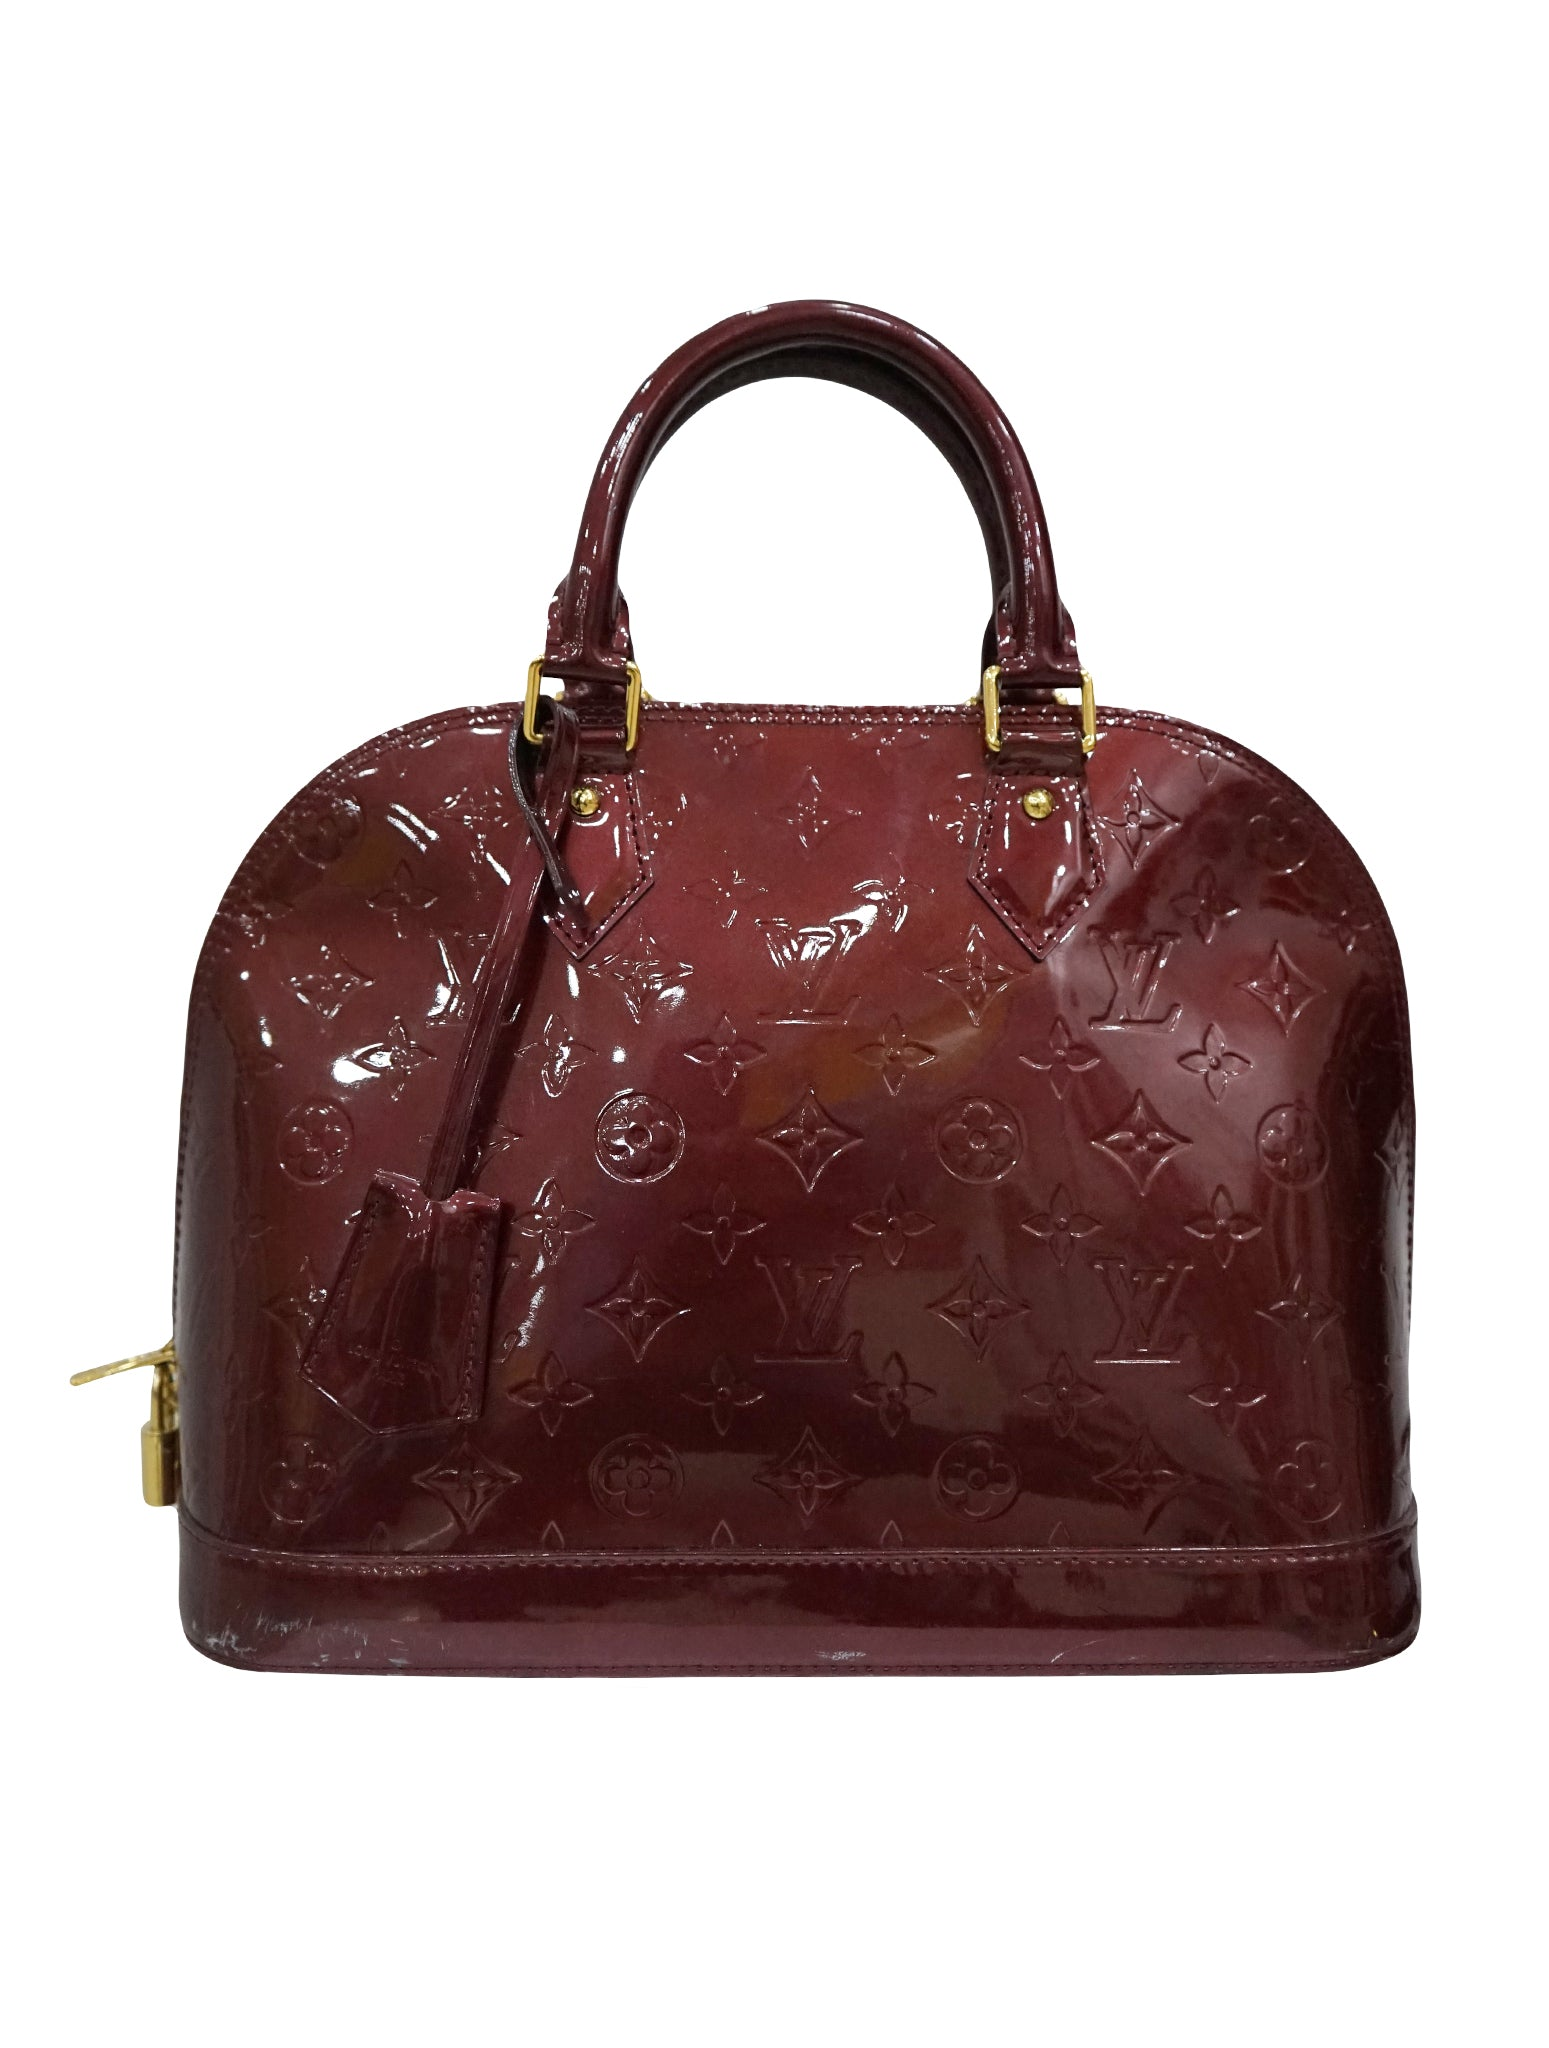 AMARANTE MONOGRAM VERNIS LEATHER ALMA MM BAG